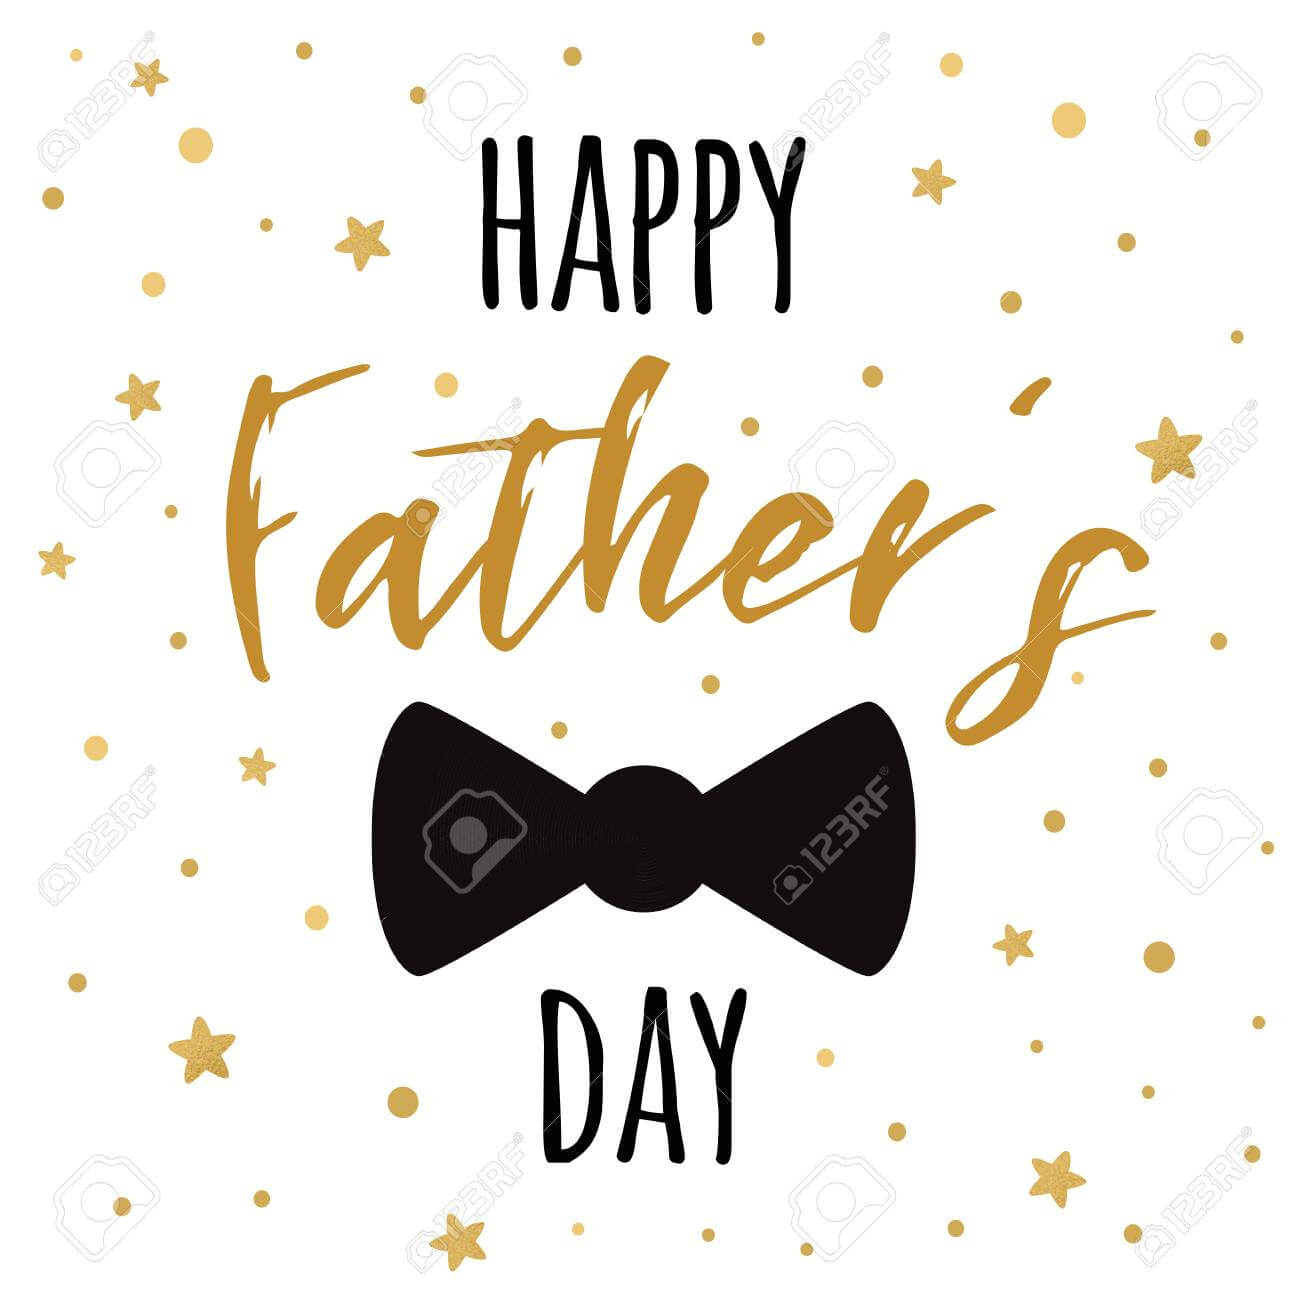 Fathers Day Banner Design With Lettering, Black Bow Tie Butterfly for Tie Banner Template